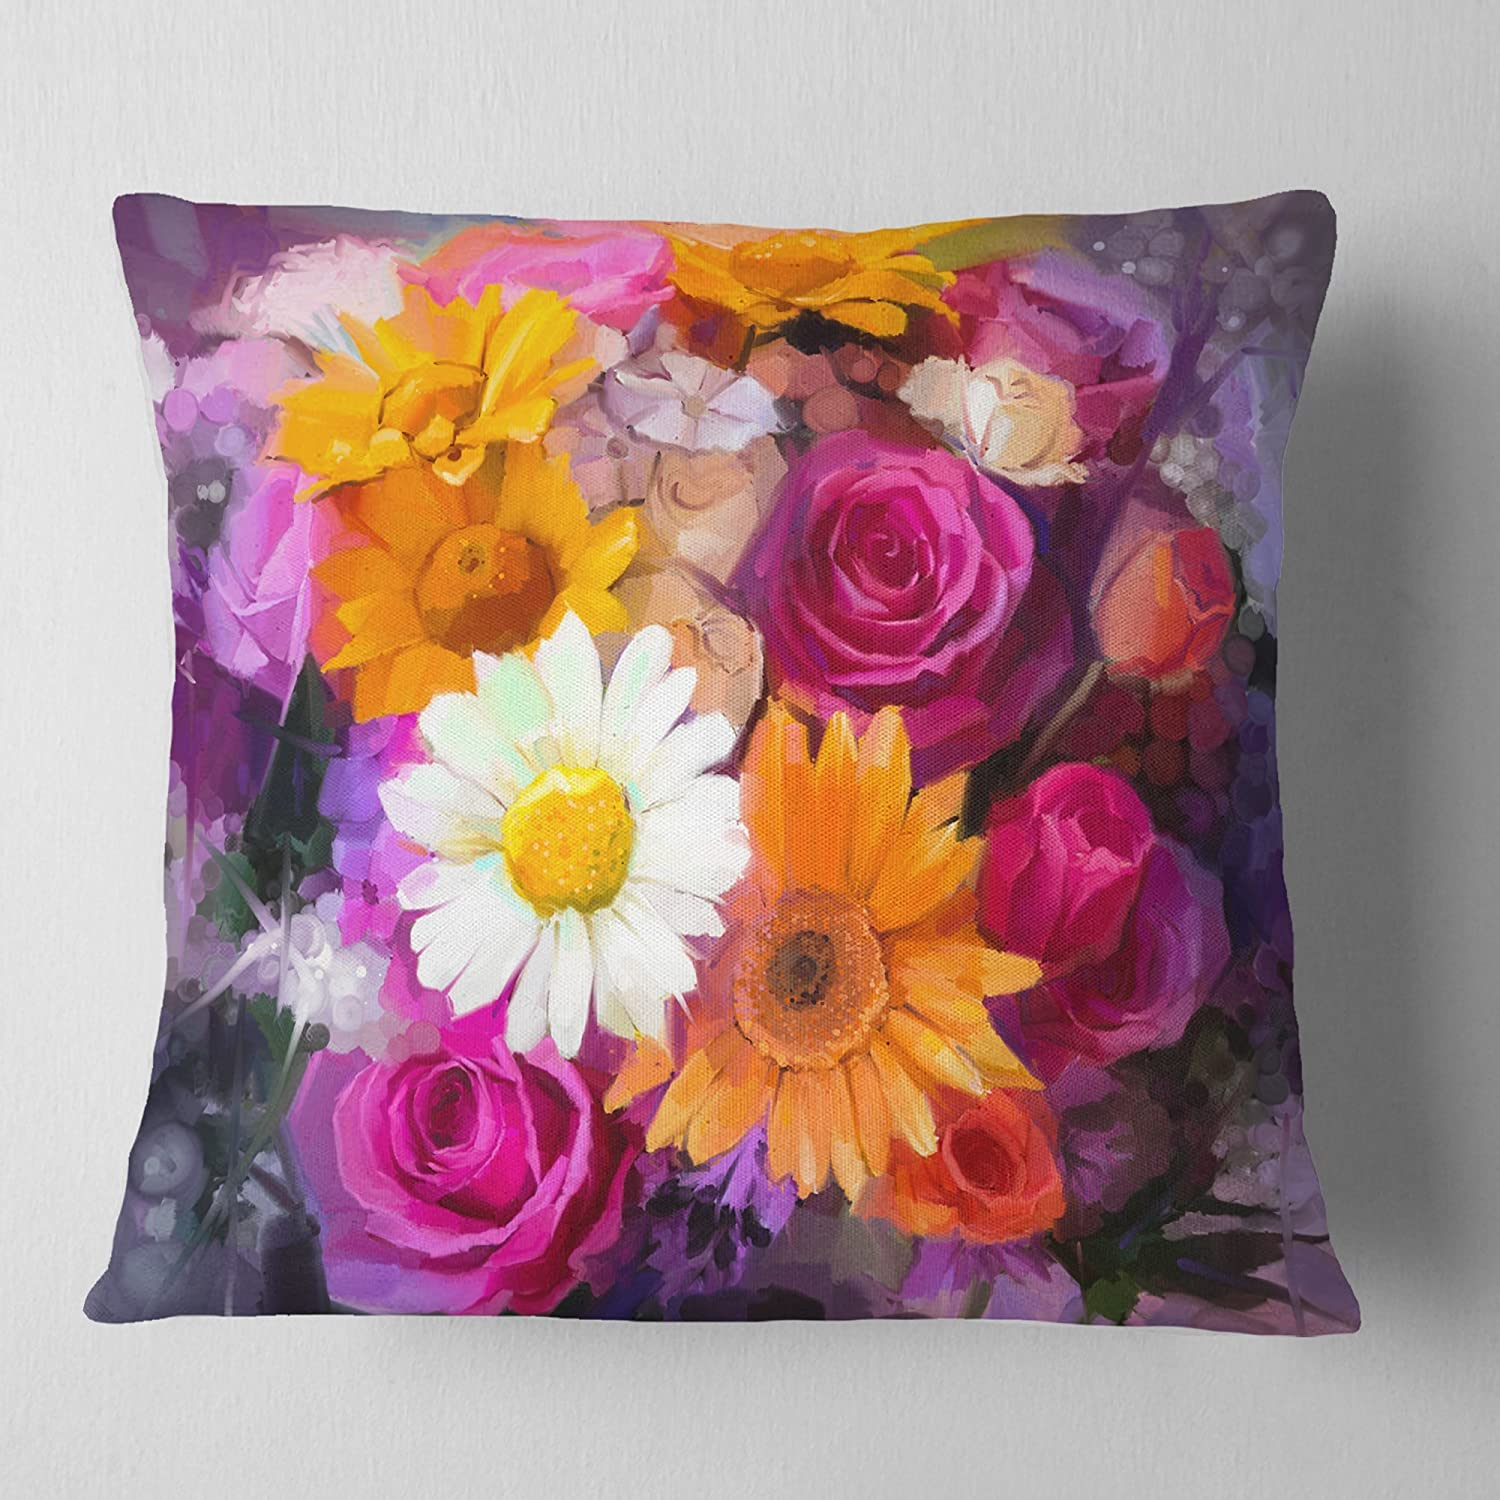 Sofa Throw Pillow 18 x 18 Designart CU14129-18-18 Bouquet of Flowers Watercolor Floral Cushion Cover for Living Room